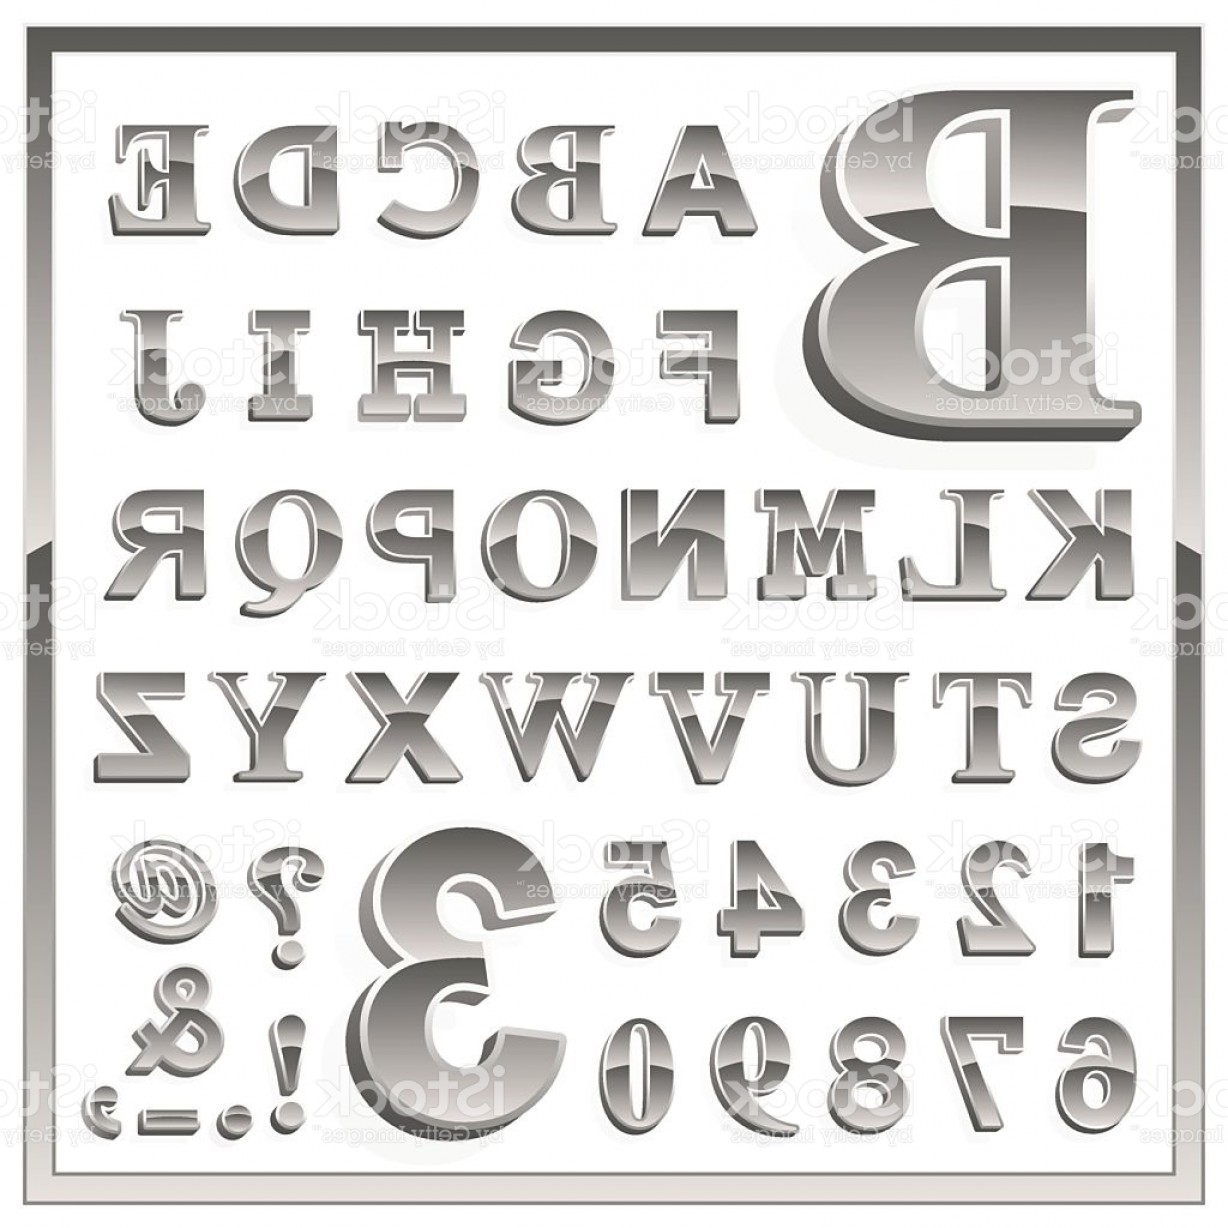 Alphabet Letters Vector Art: Greyscale Metallic Numerals And Alphabet Letters Gm